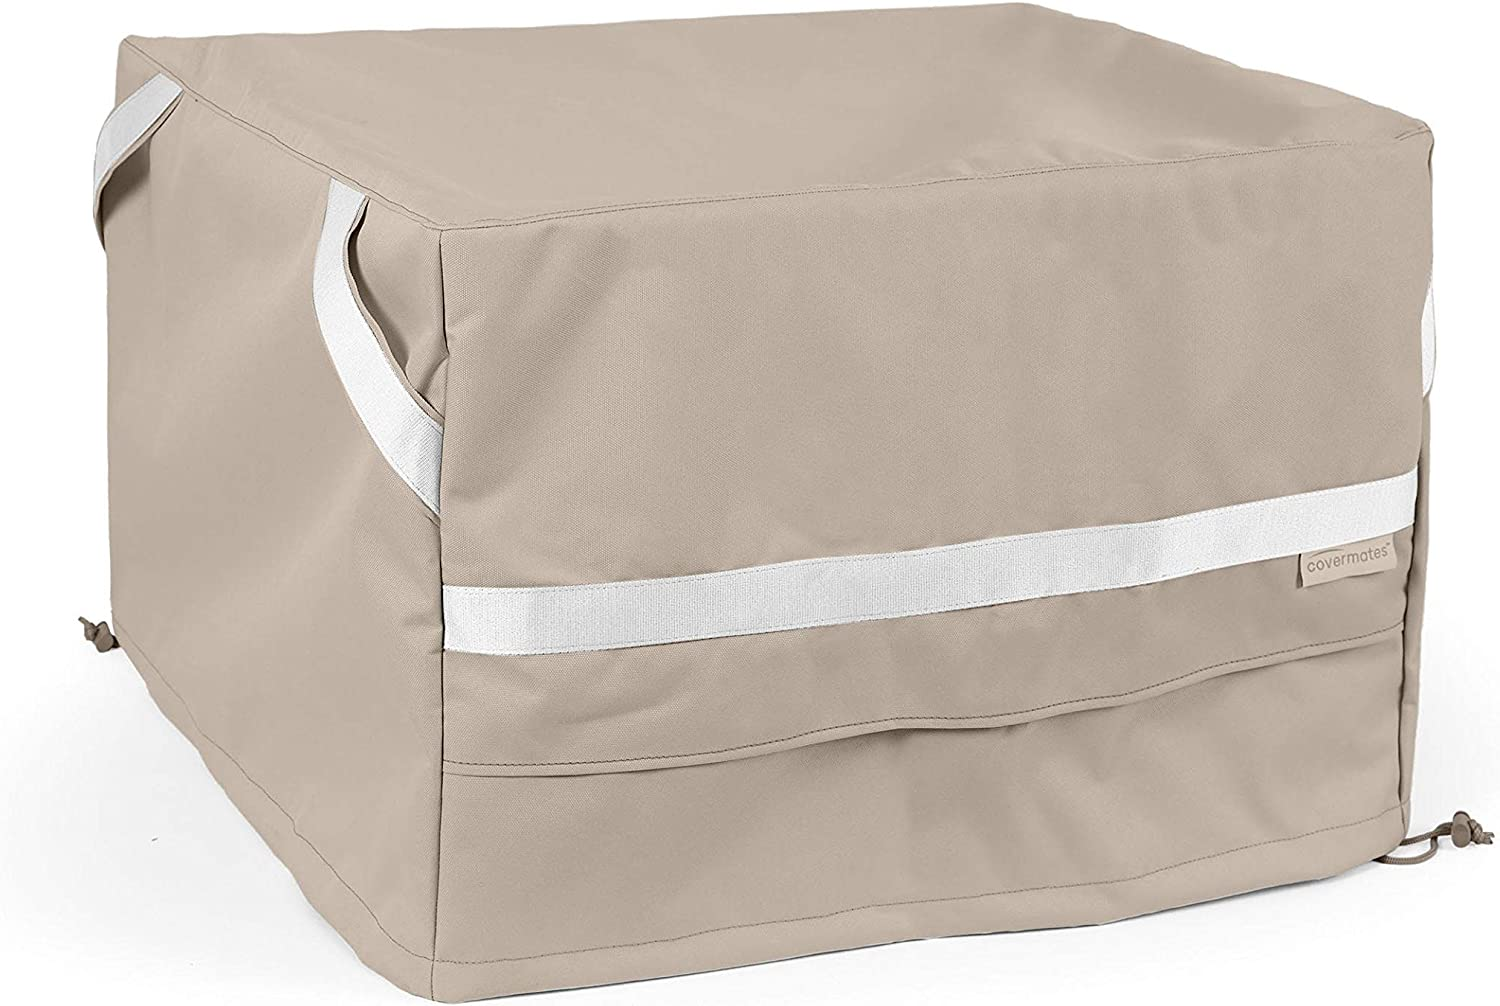 Covermates Long Popular products Beach Mall Square Ottoman Cover - Polyester Res Premium Weather